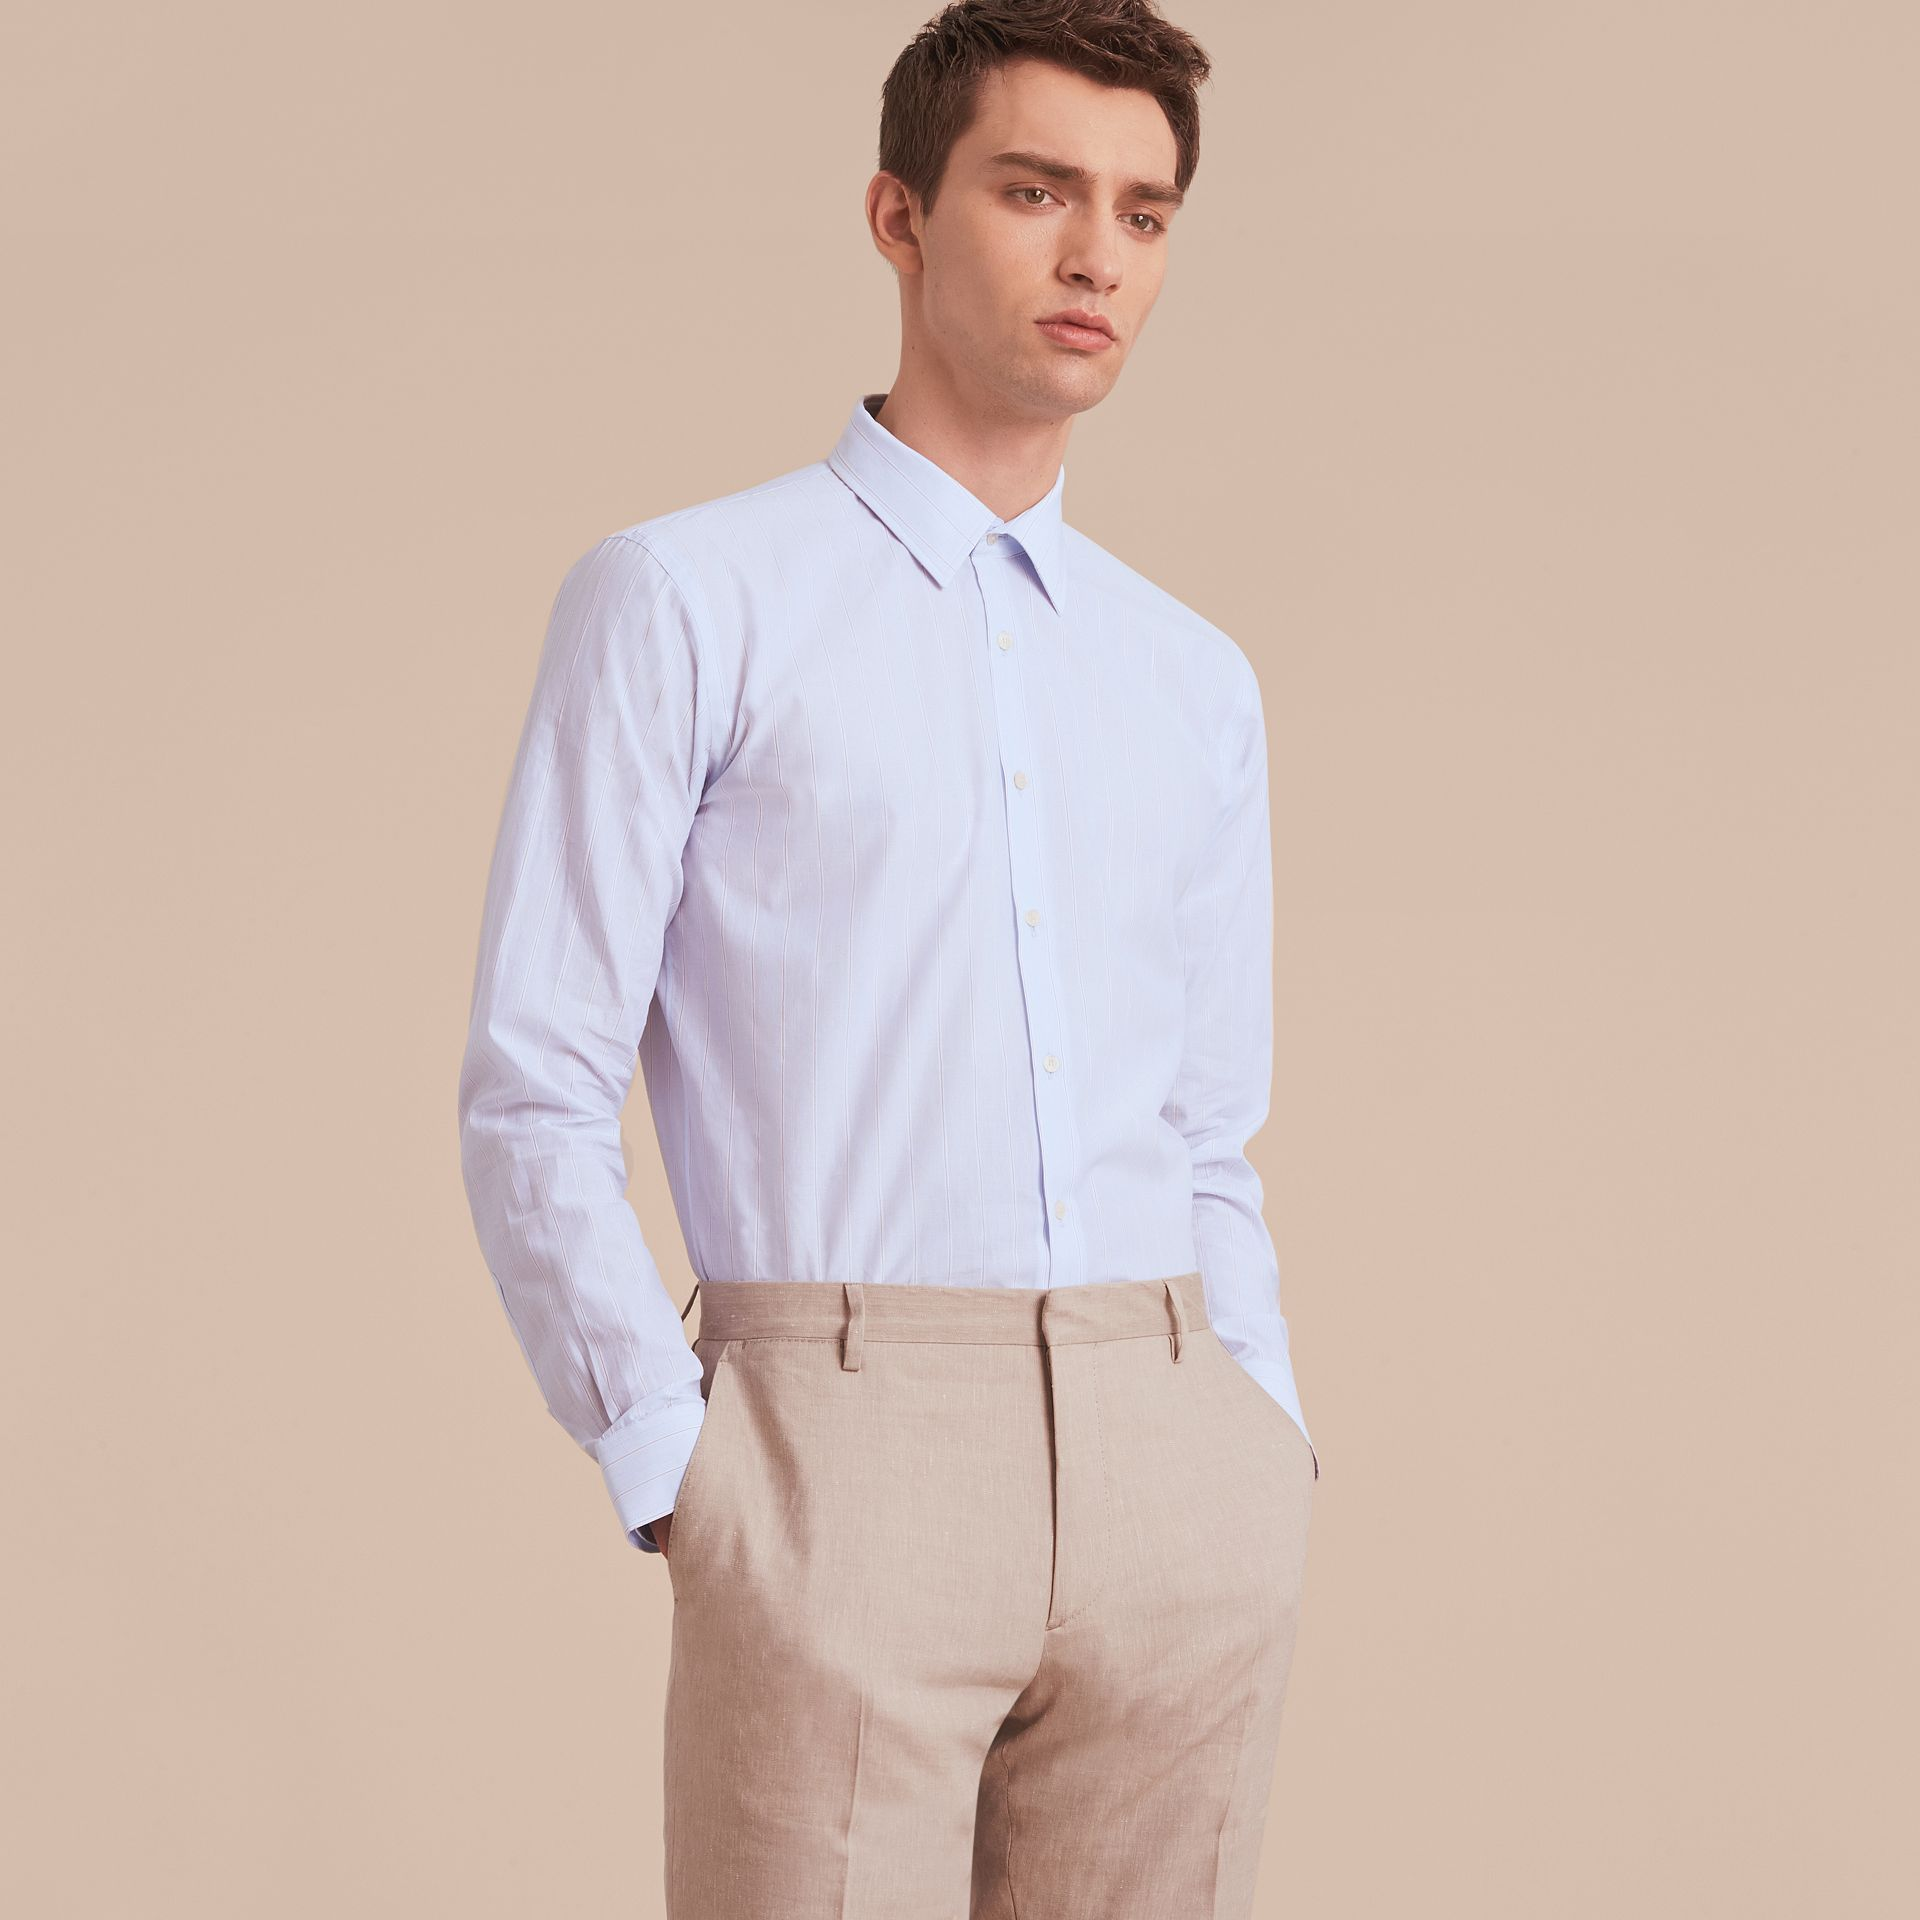 Modern Fit Cotton Linen Striped Shirt in Light Blue - Men | Burberry - gallery image 6